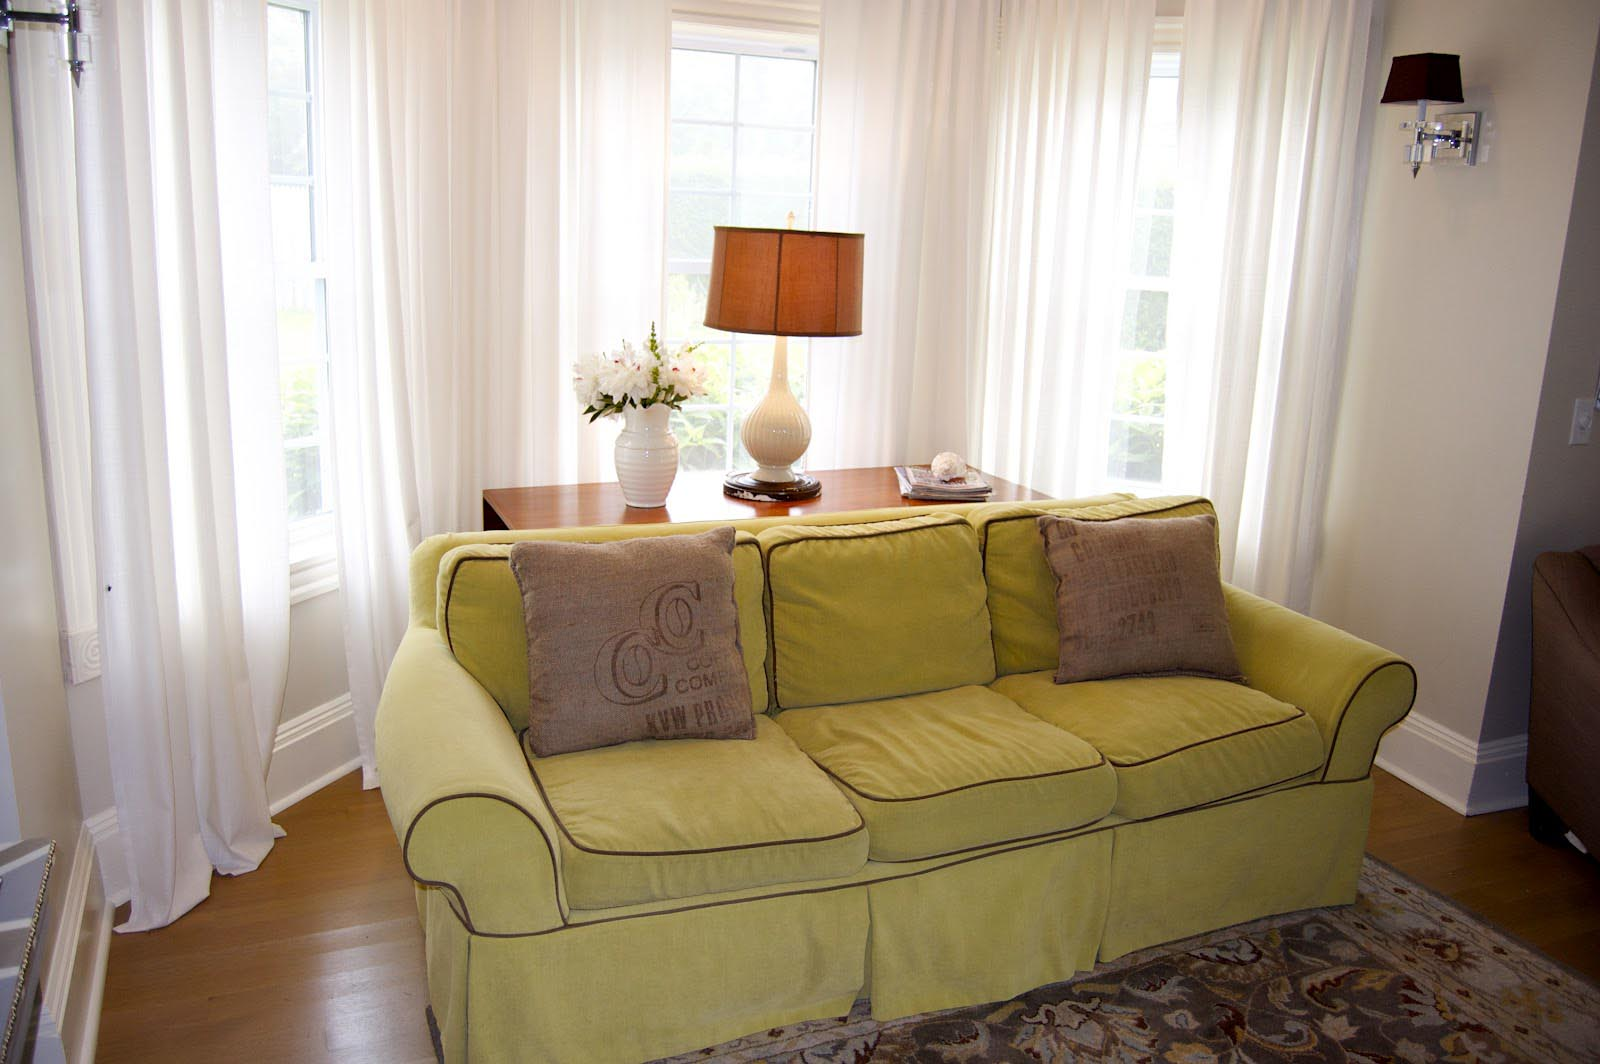 Living room bay window treatments window treatments Window treatments for bay window in living room